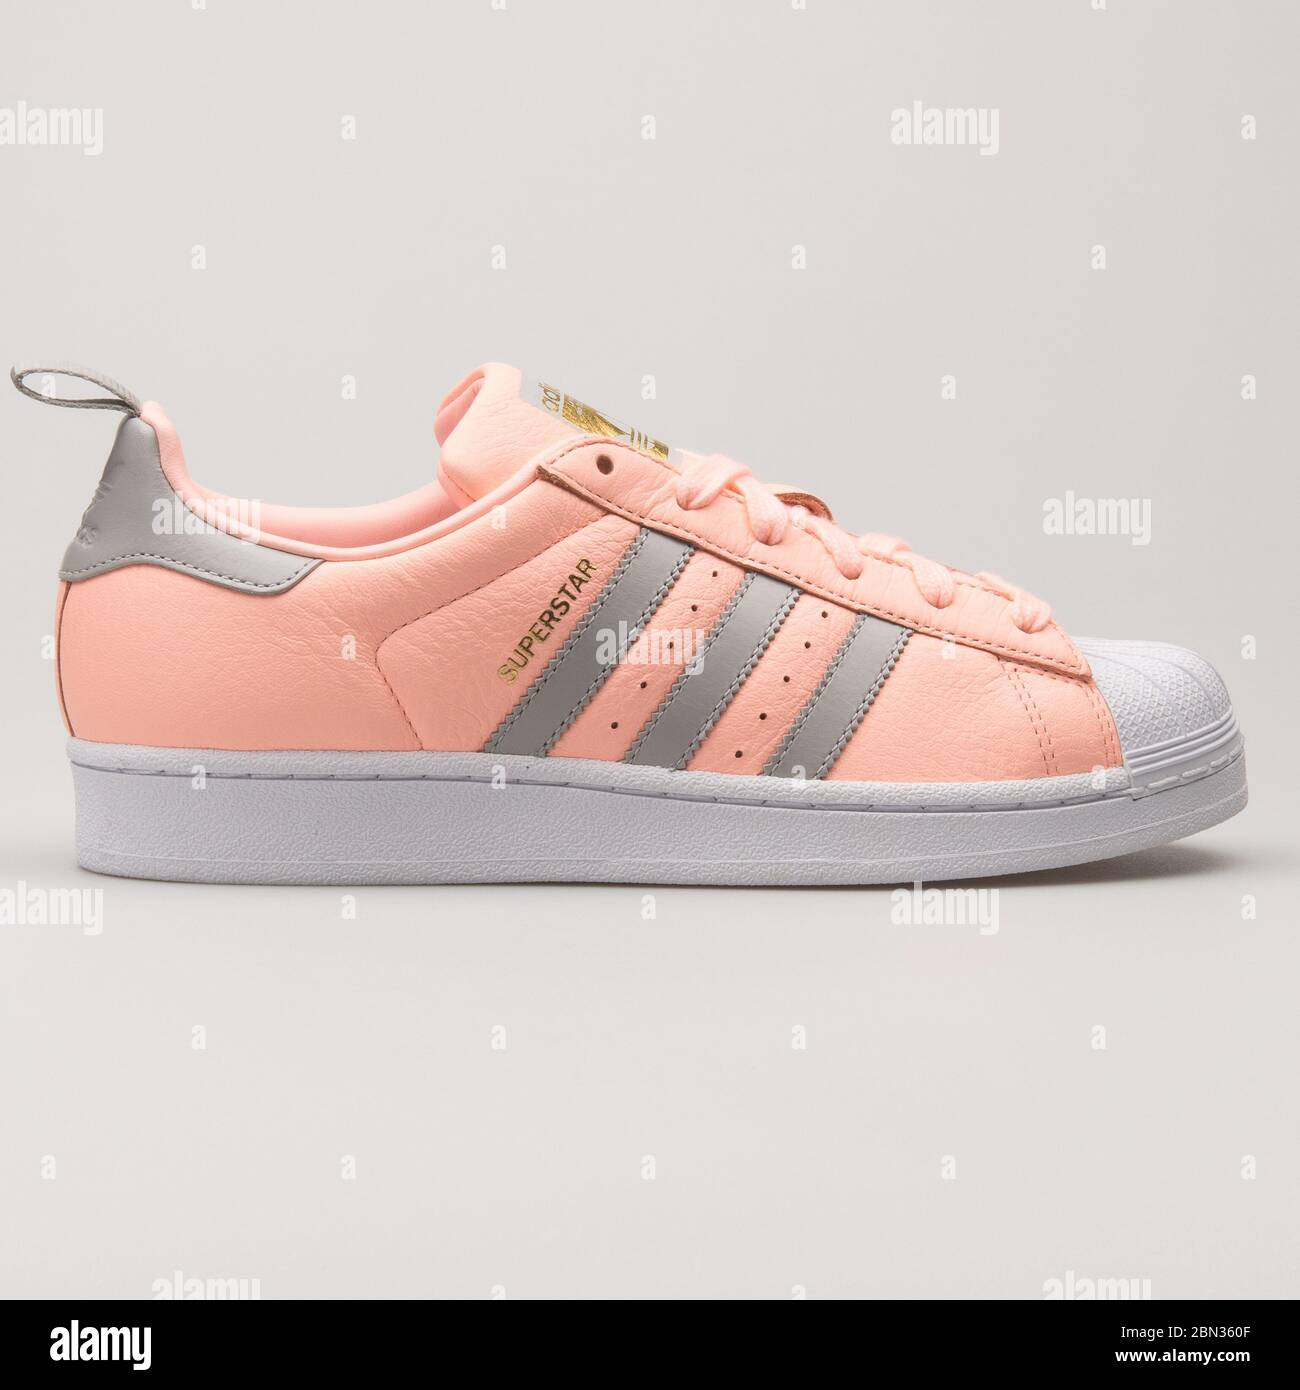 White Adidas Superstar Trainers Immagini e Fotos Stock Alamy